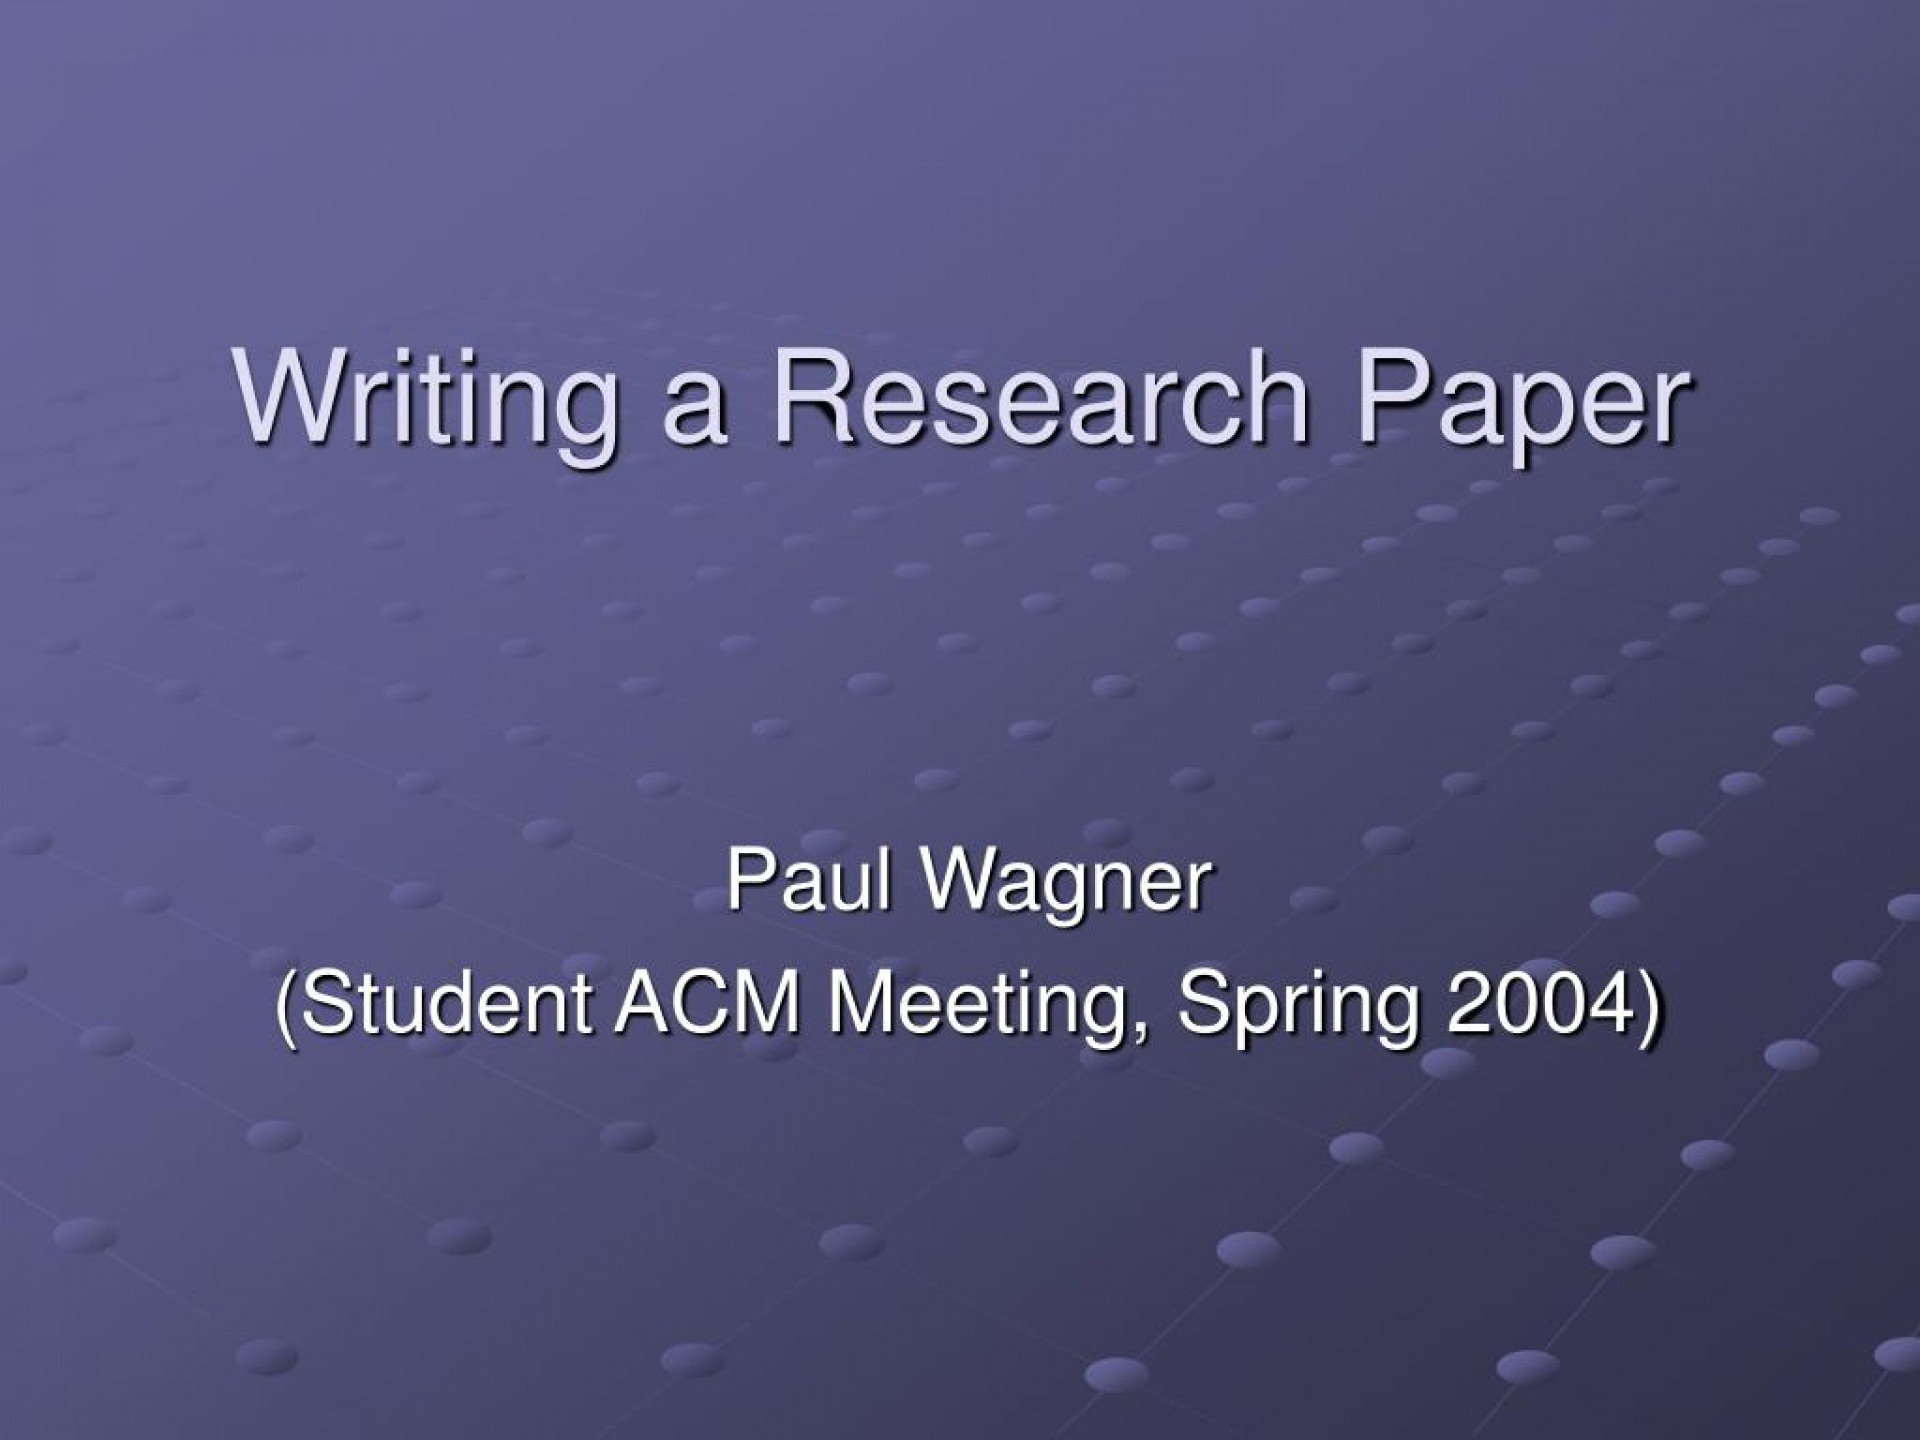 007 Research Paper How To Make Ppt Writing Staggering Prepare A Powerpoint Presentation 1920